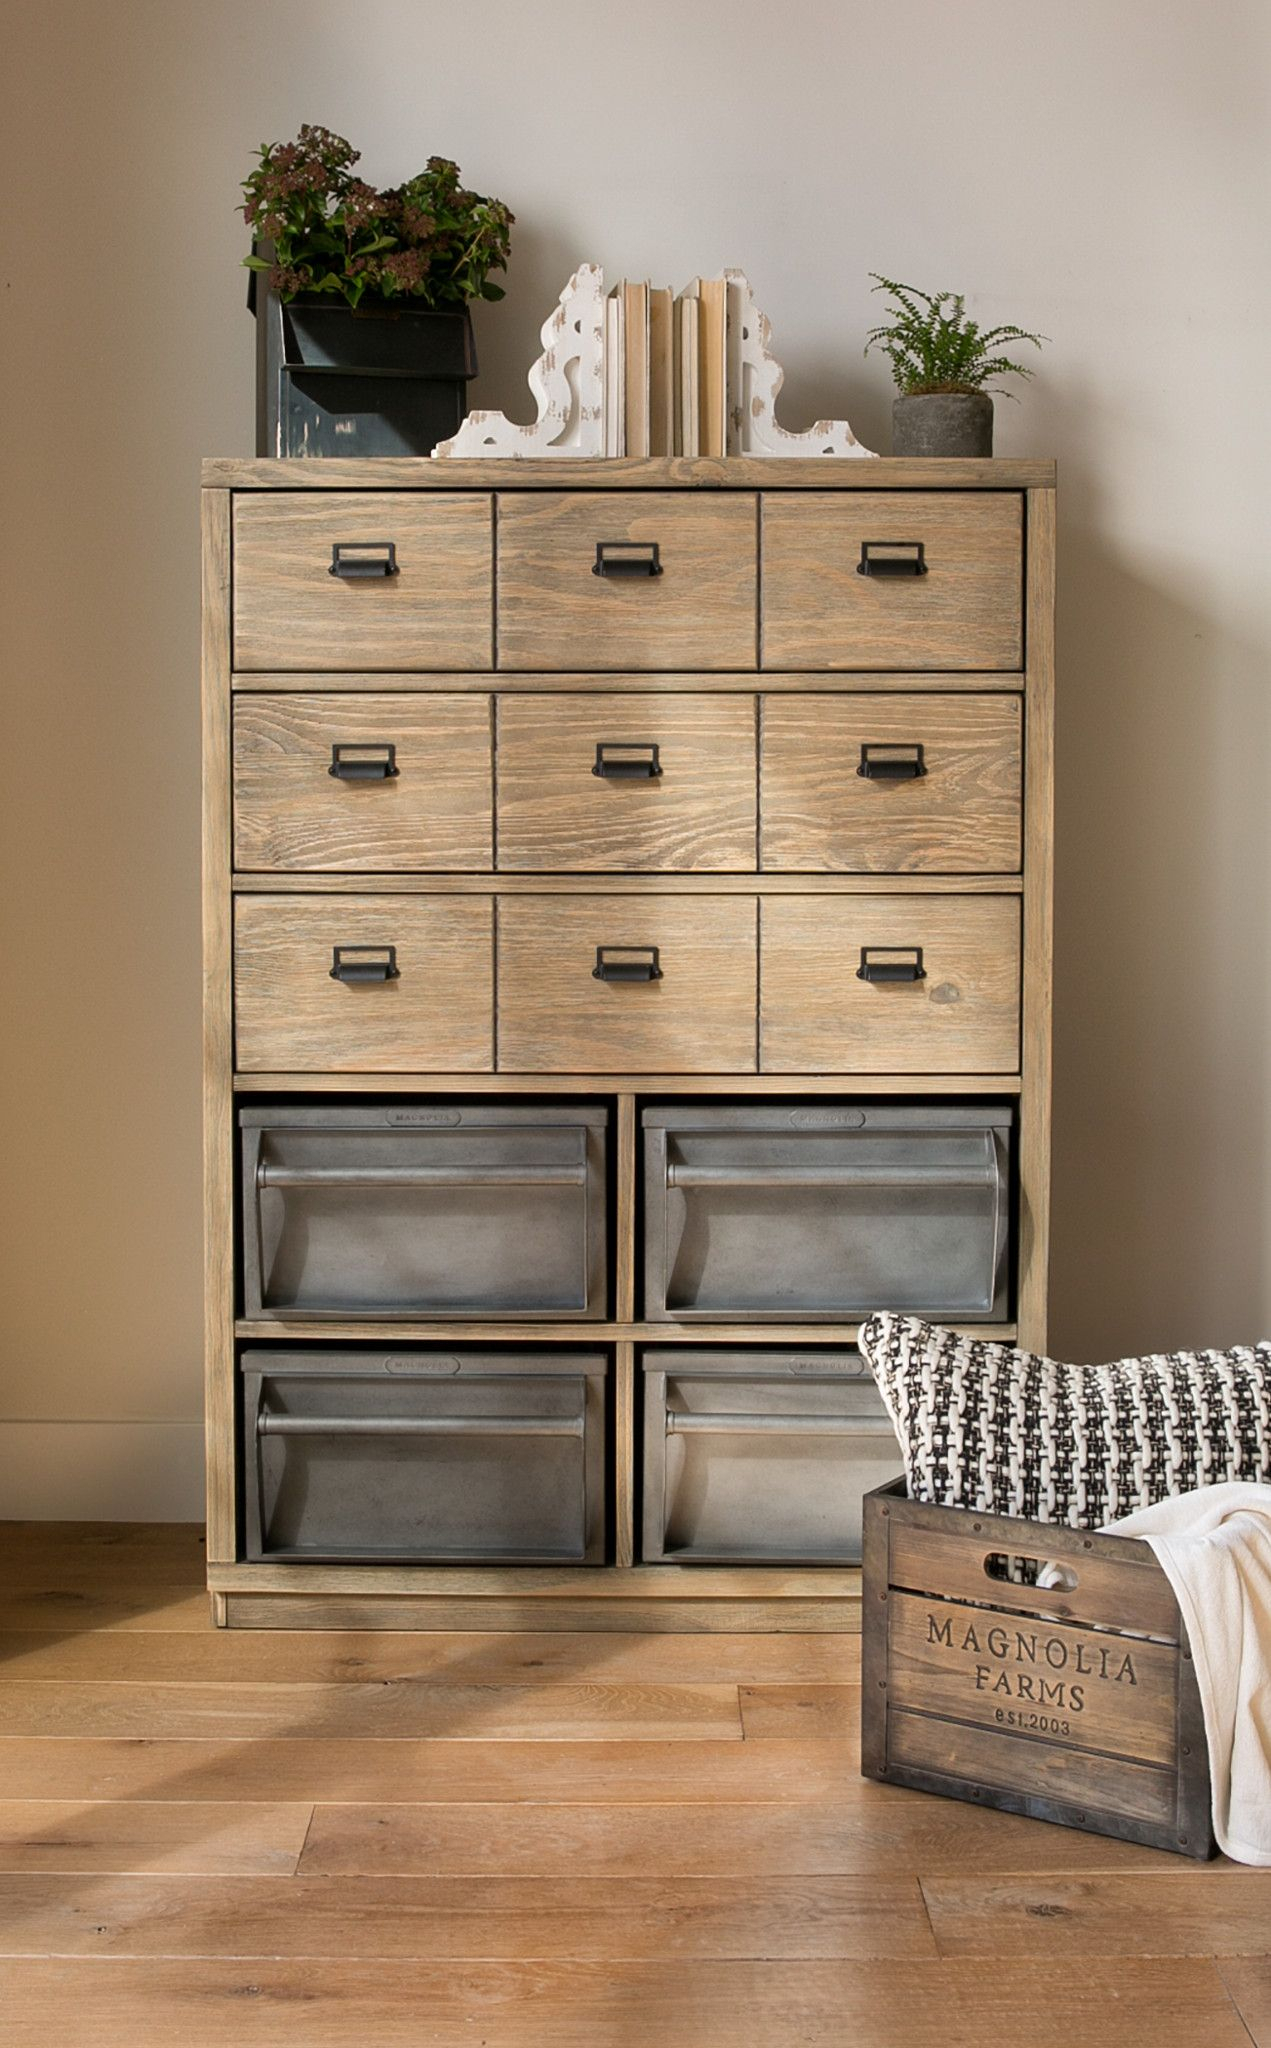 Magnolia Home Workshop Chest With Metal Binsjoanna Gaines Within Magnolia Home Paradigm Sofa Chairs By Joanna Gaines (View 17 of 20)